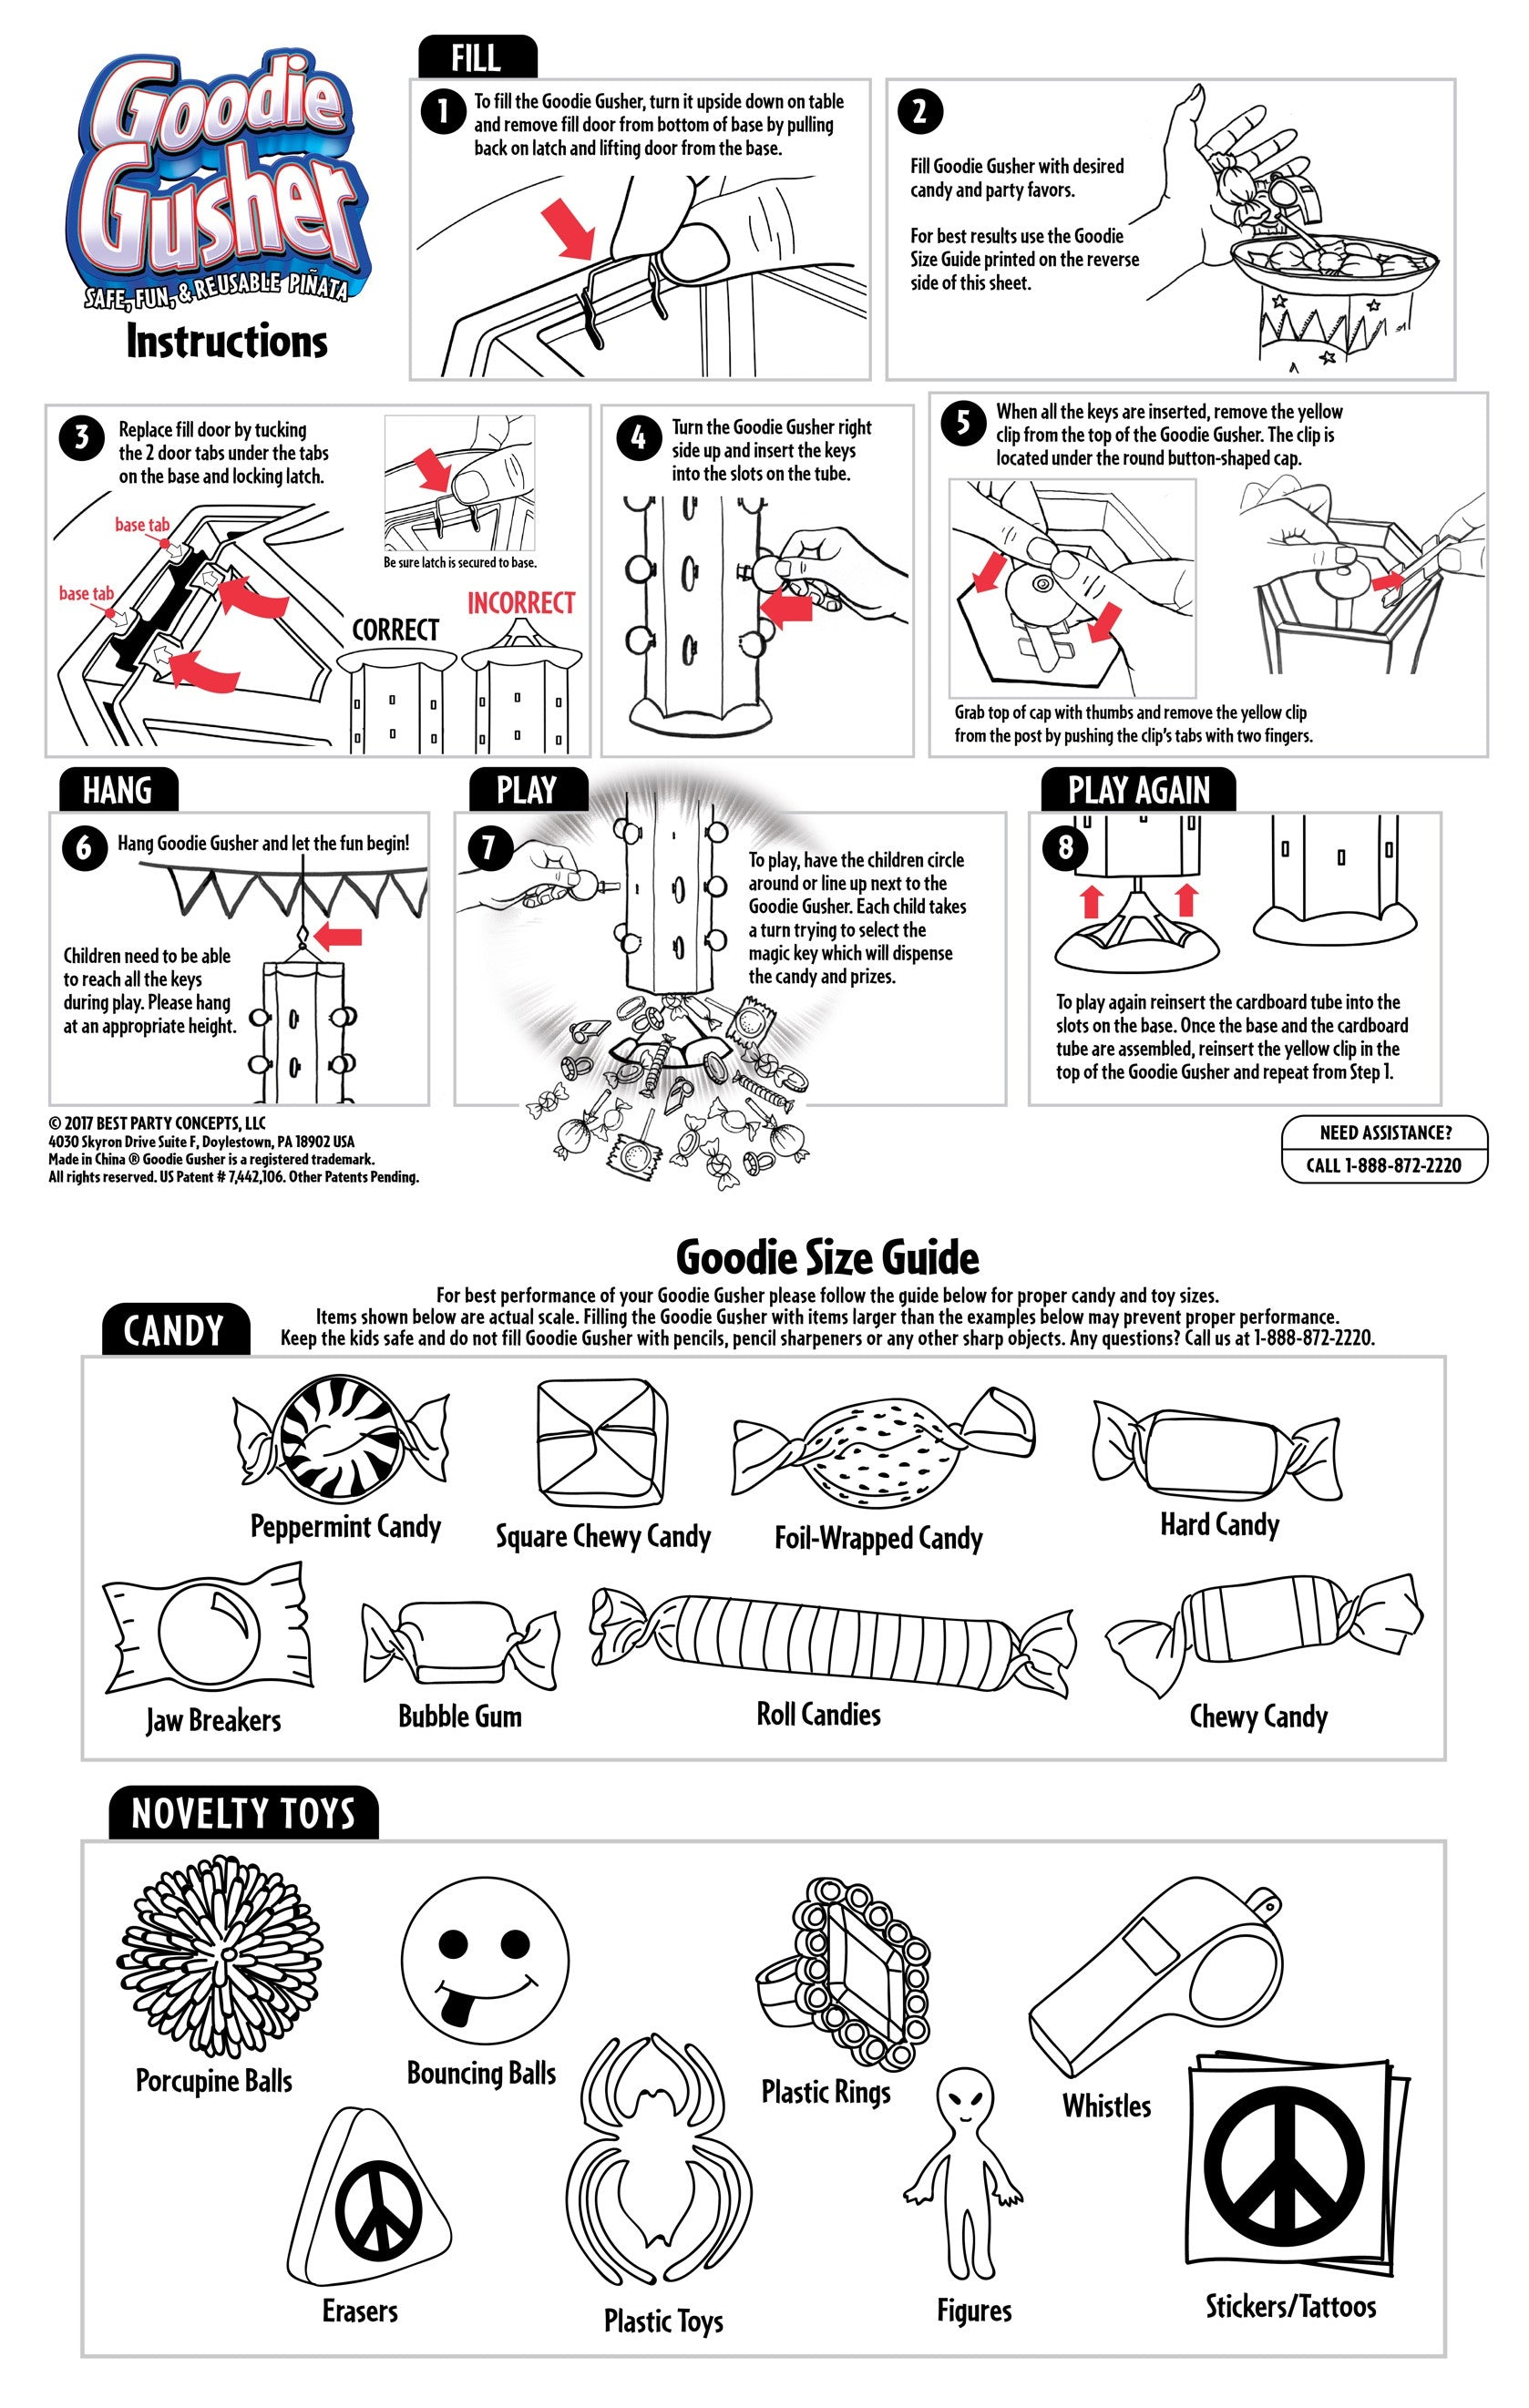 Instructions and Candy Guide